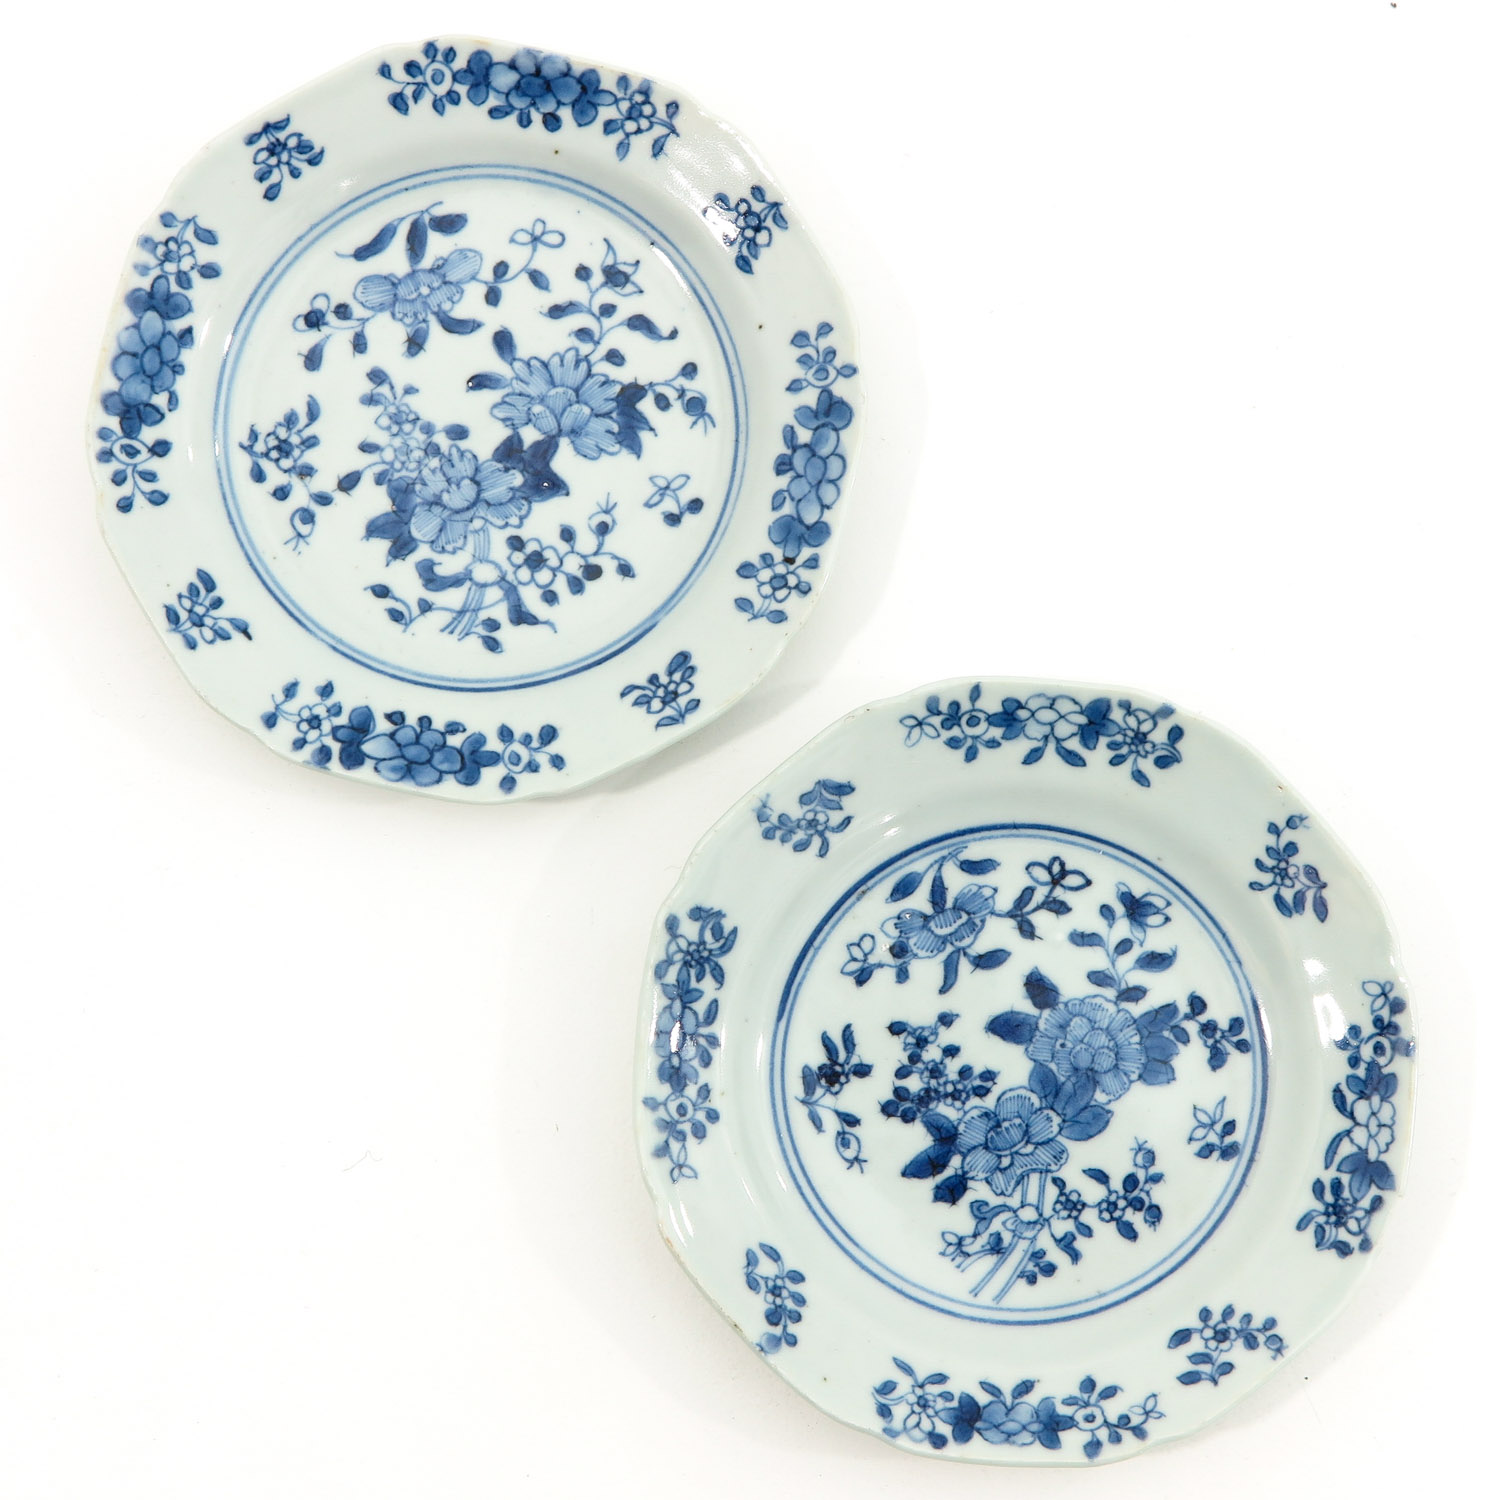 A Collection of 6 Blue and White Plates - Image 3 of 10